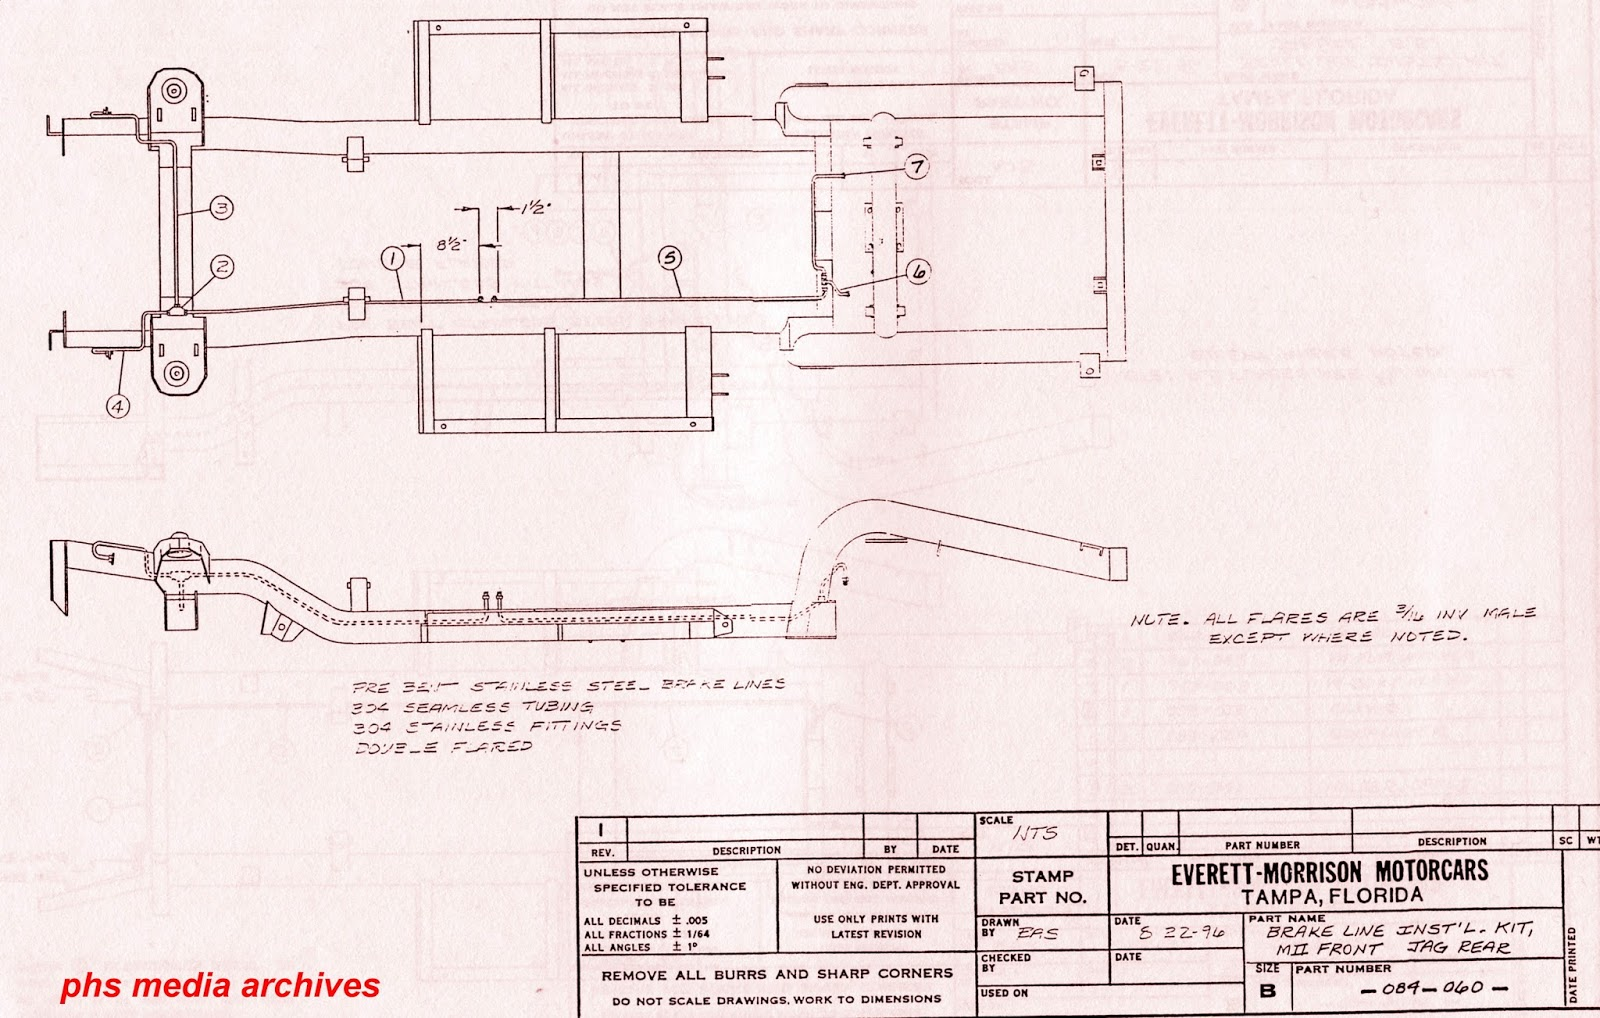 Here is a view of a 26 series chassis, set up for Mustang II front end and  Jag IRS rear.